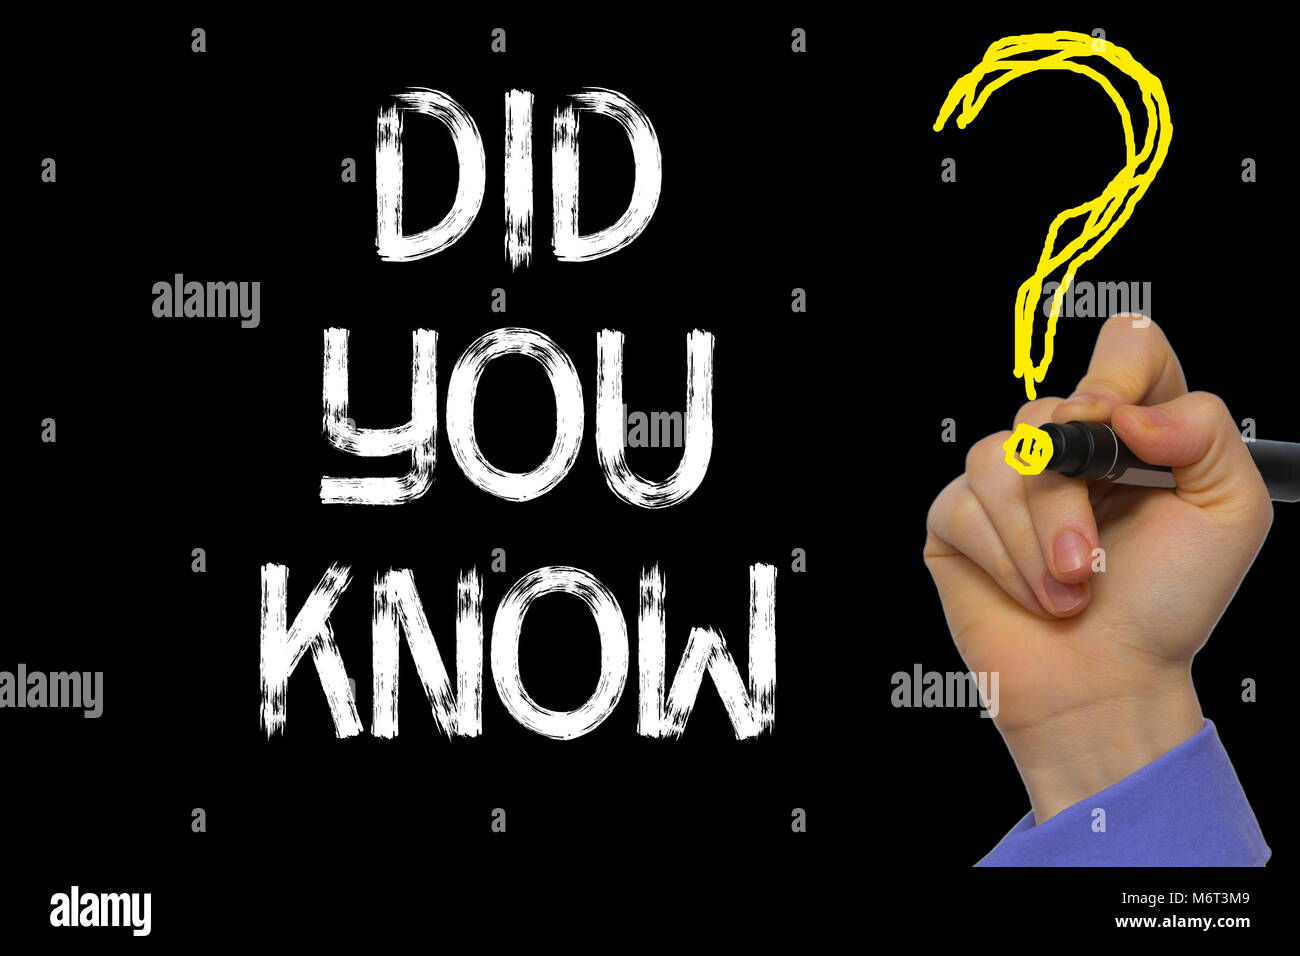 Hand writing the text: Did You Know? Stock Photo